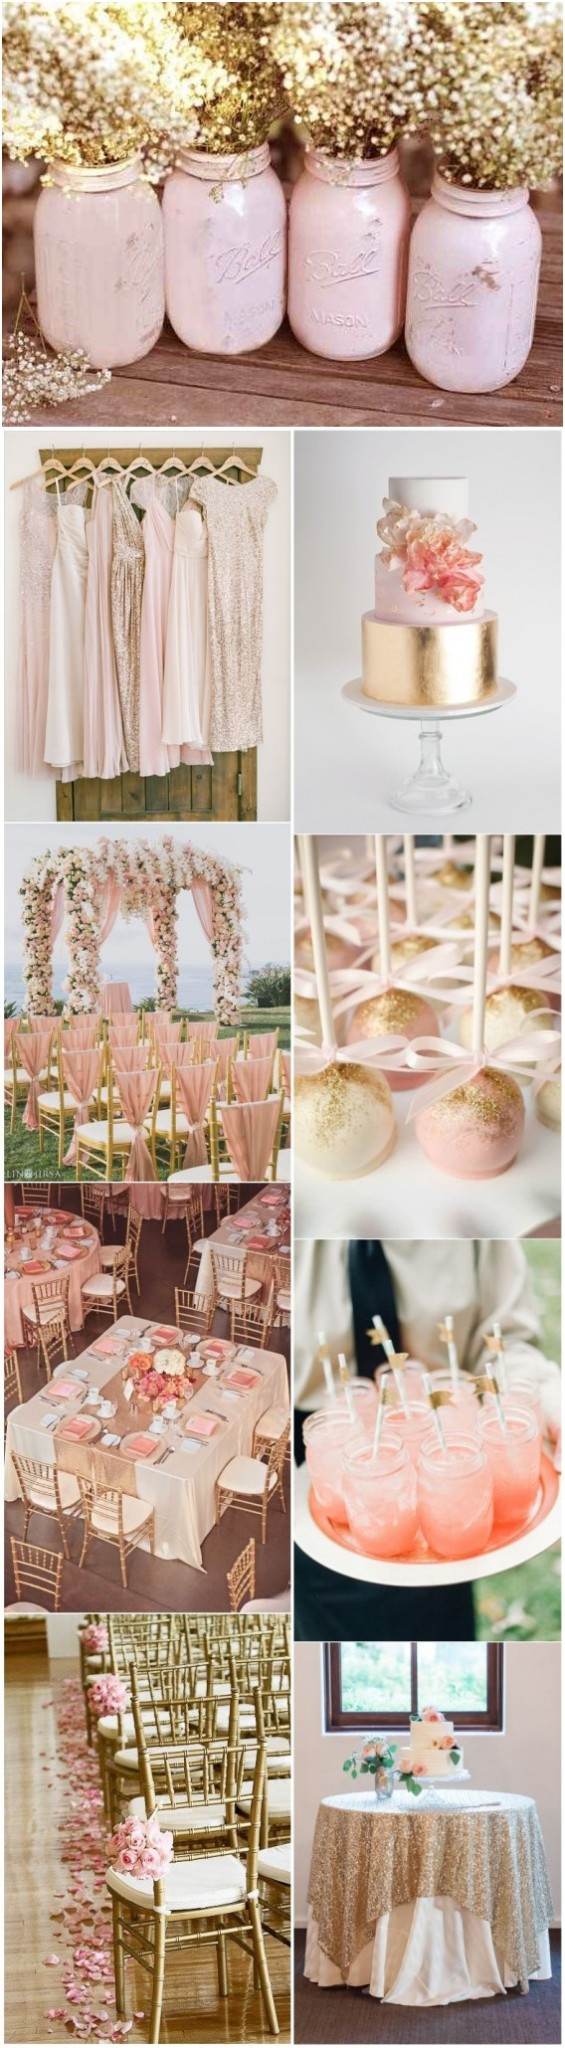 pink and gold wedding color ideas